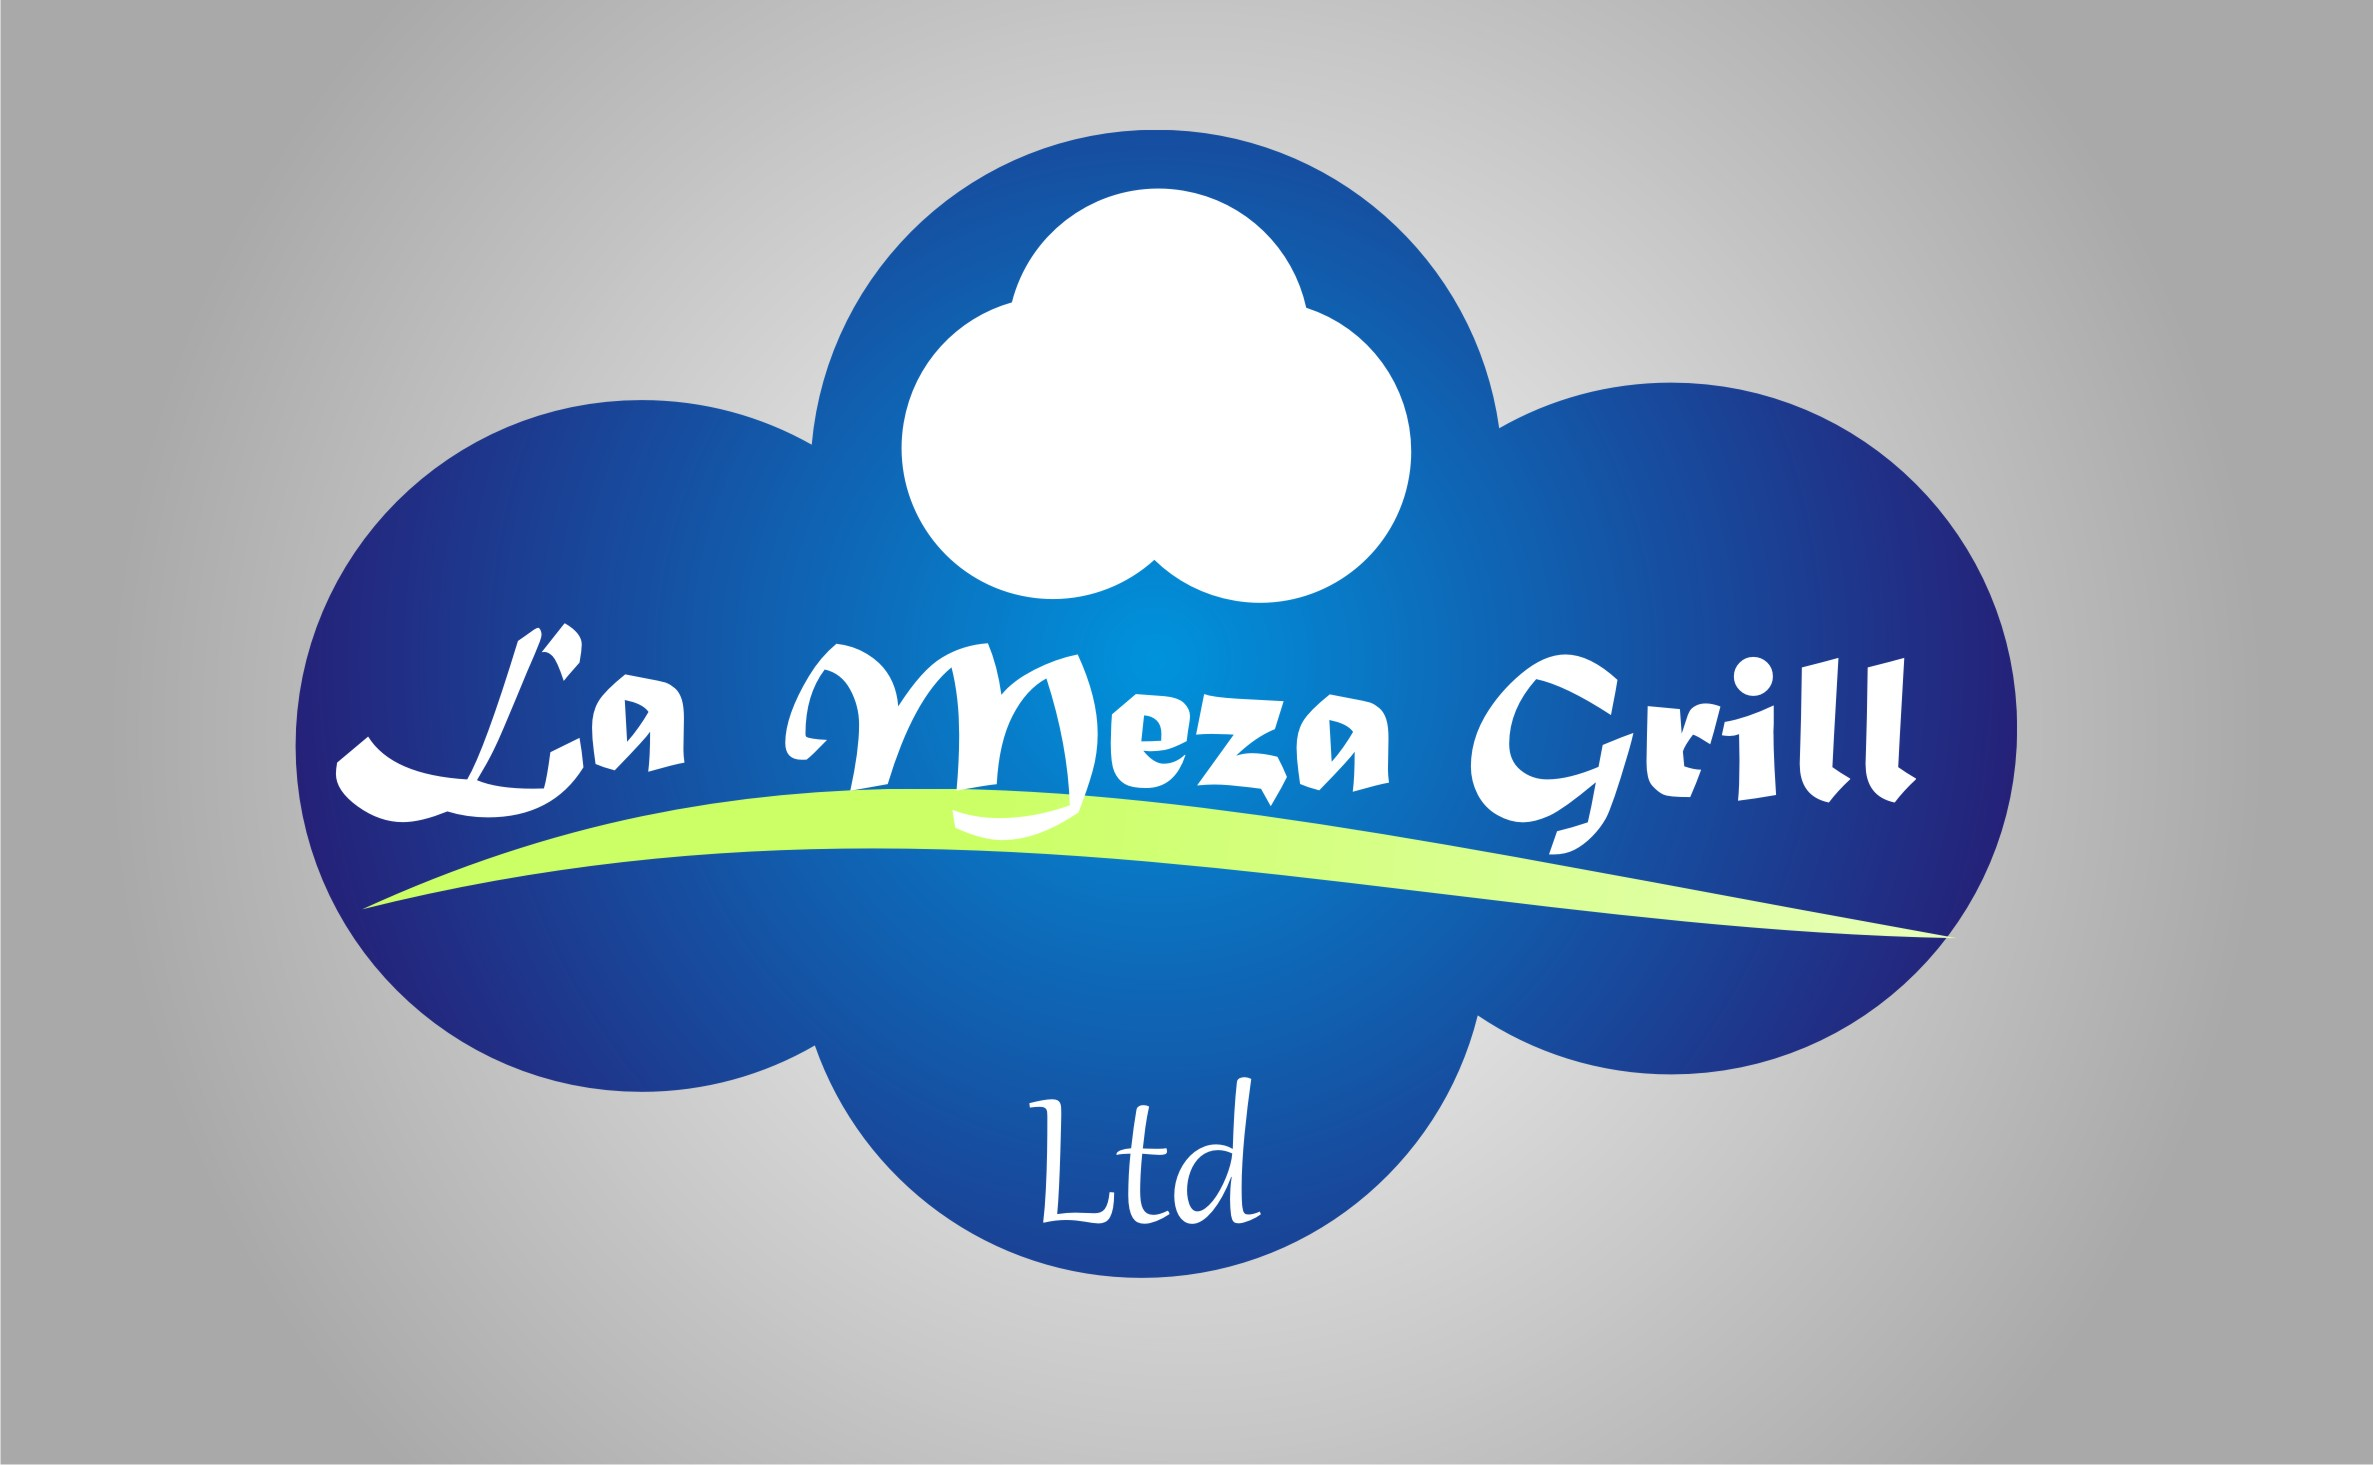 Logo Design by Josri Vengeance - Entry No. 86 in the Logo Design Contest Inspiring Logo Design for La Meza Grill Ltd..